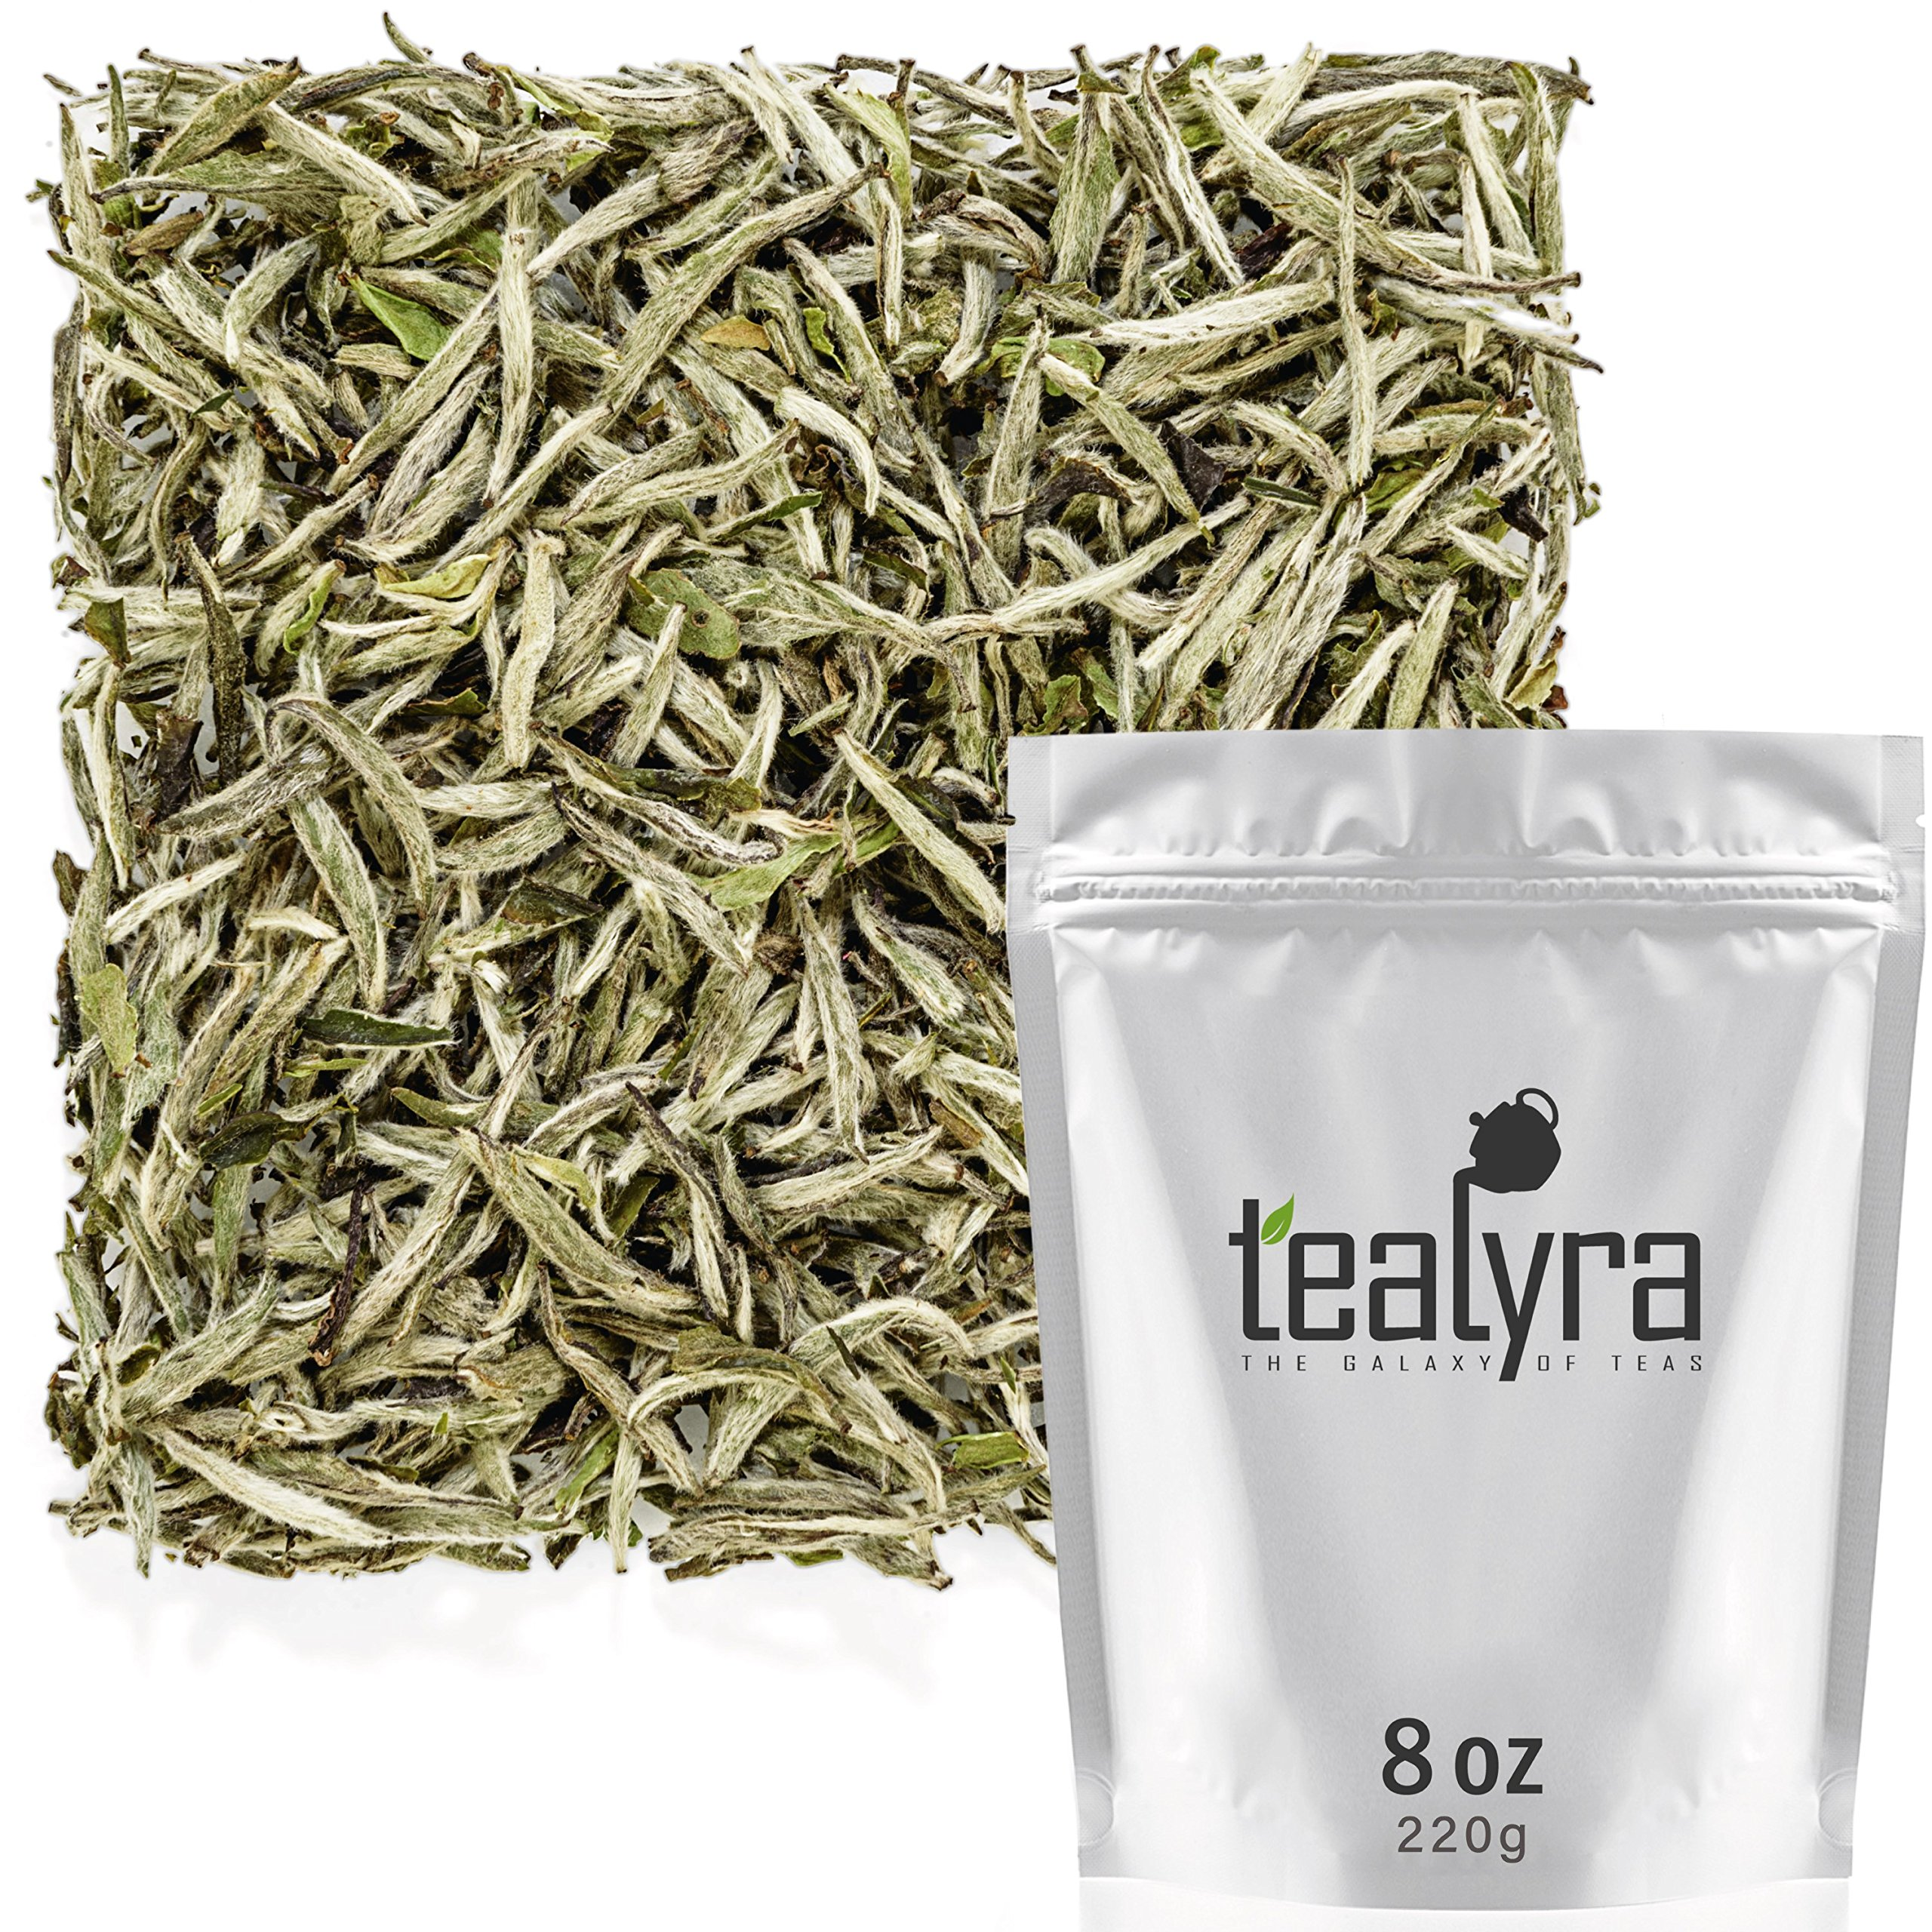 Tealyra - Premium White Silver Needle Tea - Bai Hao Yinzhen - Organically Grown in Fujian China - Superior Chinese Silver Tip White Tea - Loose Leaf Tea - Caffeine Level Low - 220g (8-ounce) by Tealyra